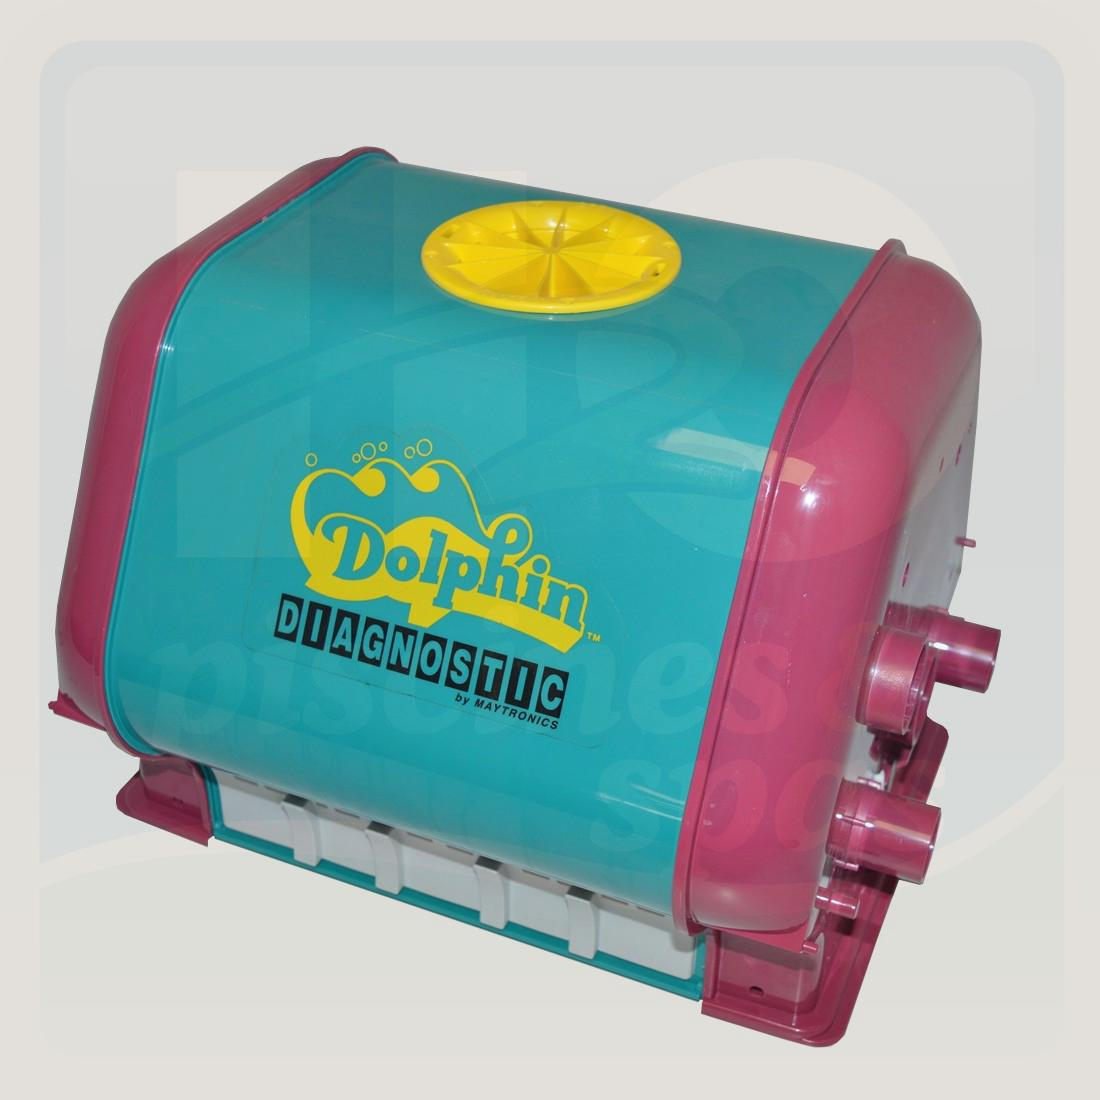 Coque de robot dolphin diagnostic 2001 h2o piscines spas for Robot piscine dolphin 2001